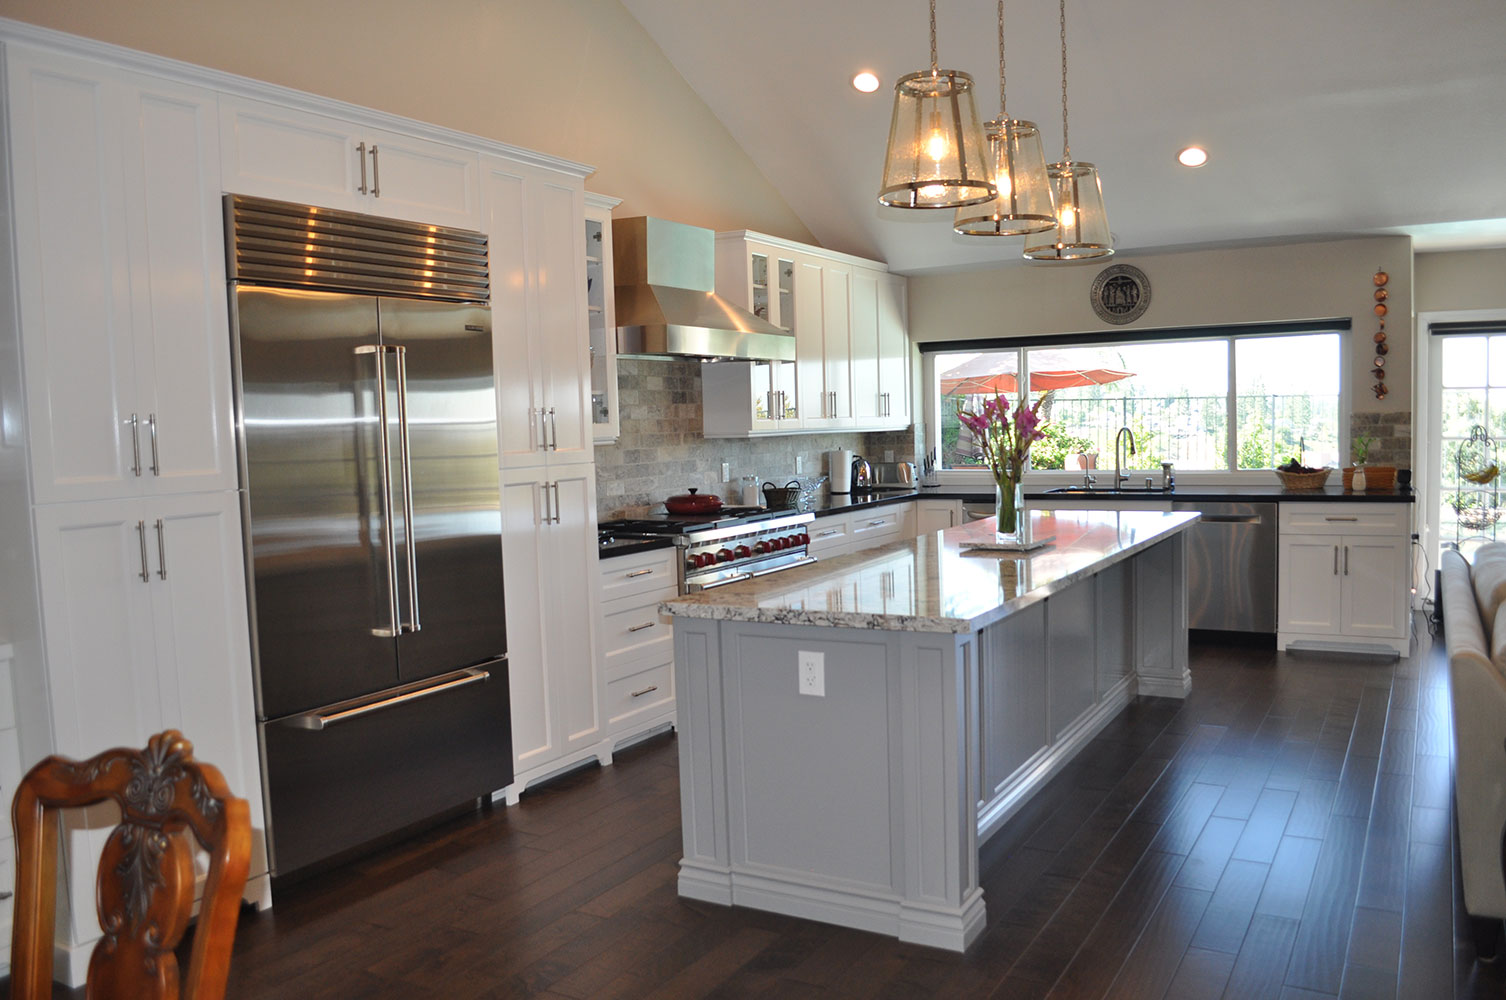 How To Find The Best Kitchen Remodeling Company and Home ...